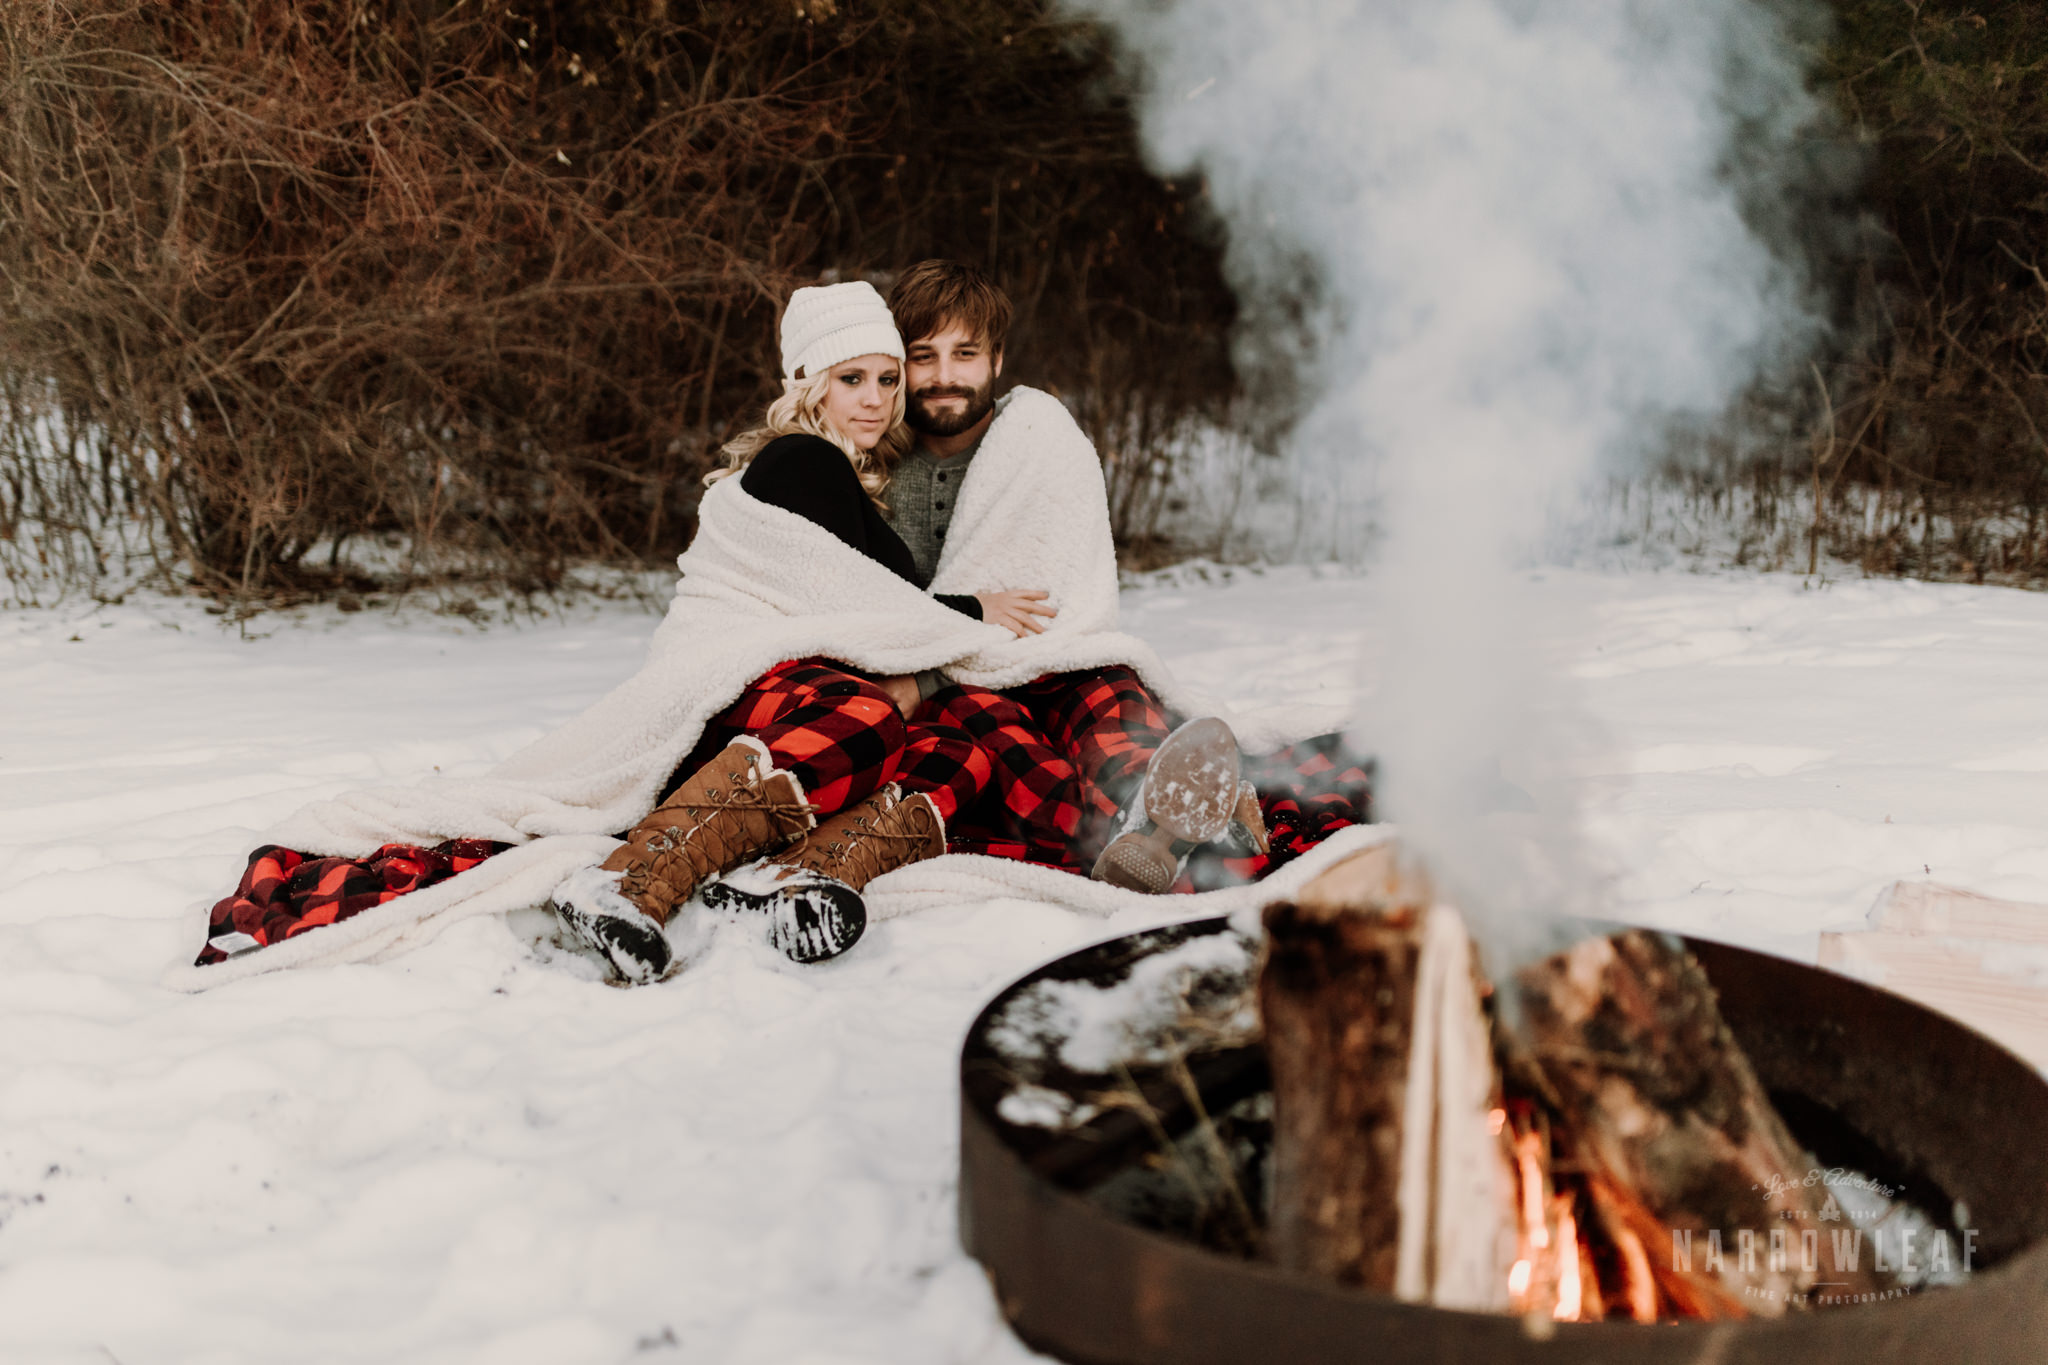 wisconsin-winter-bonfire-engagement-photography-Narrowleaf_Love_and_Adventure_Photography-372.jpg